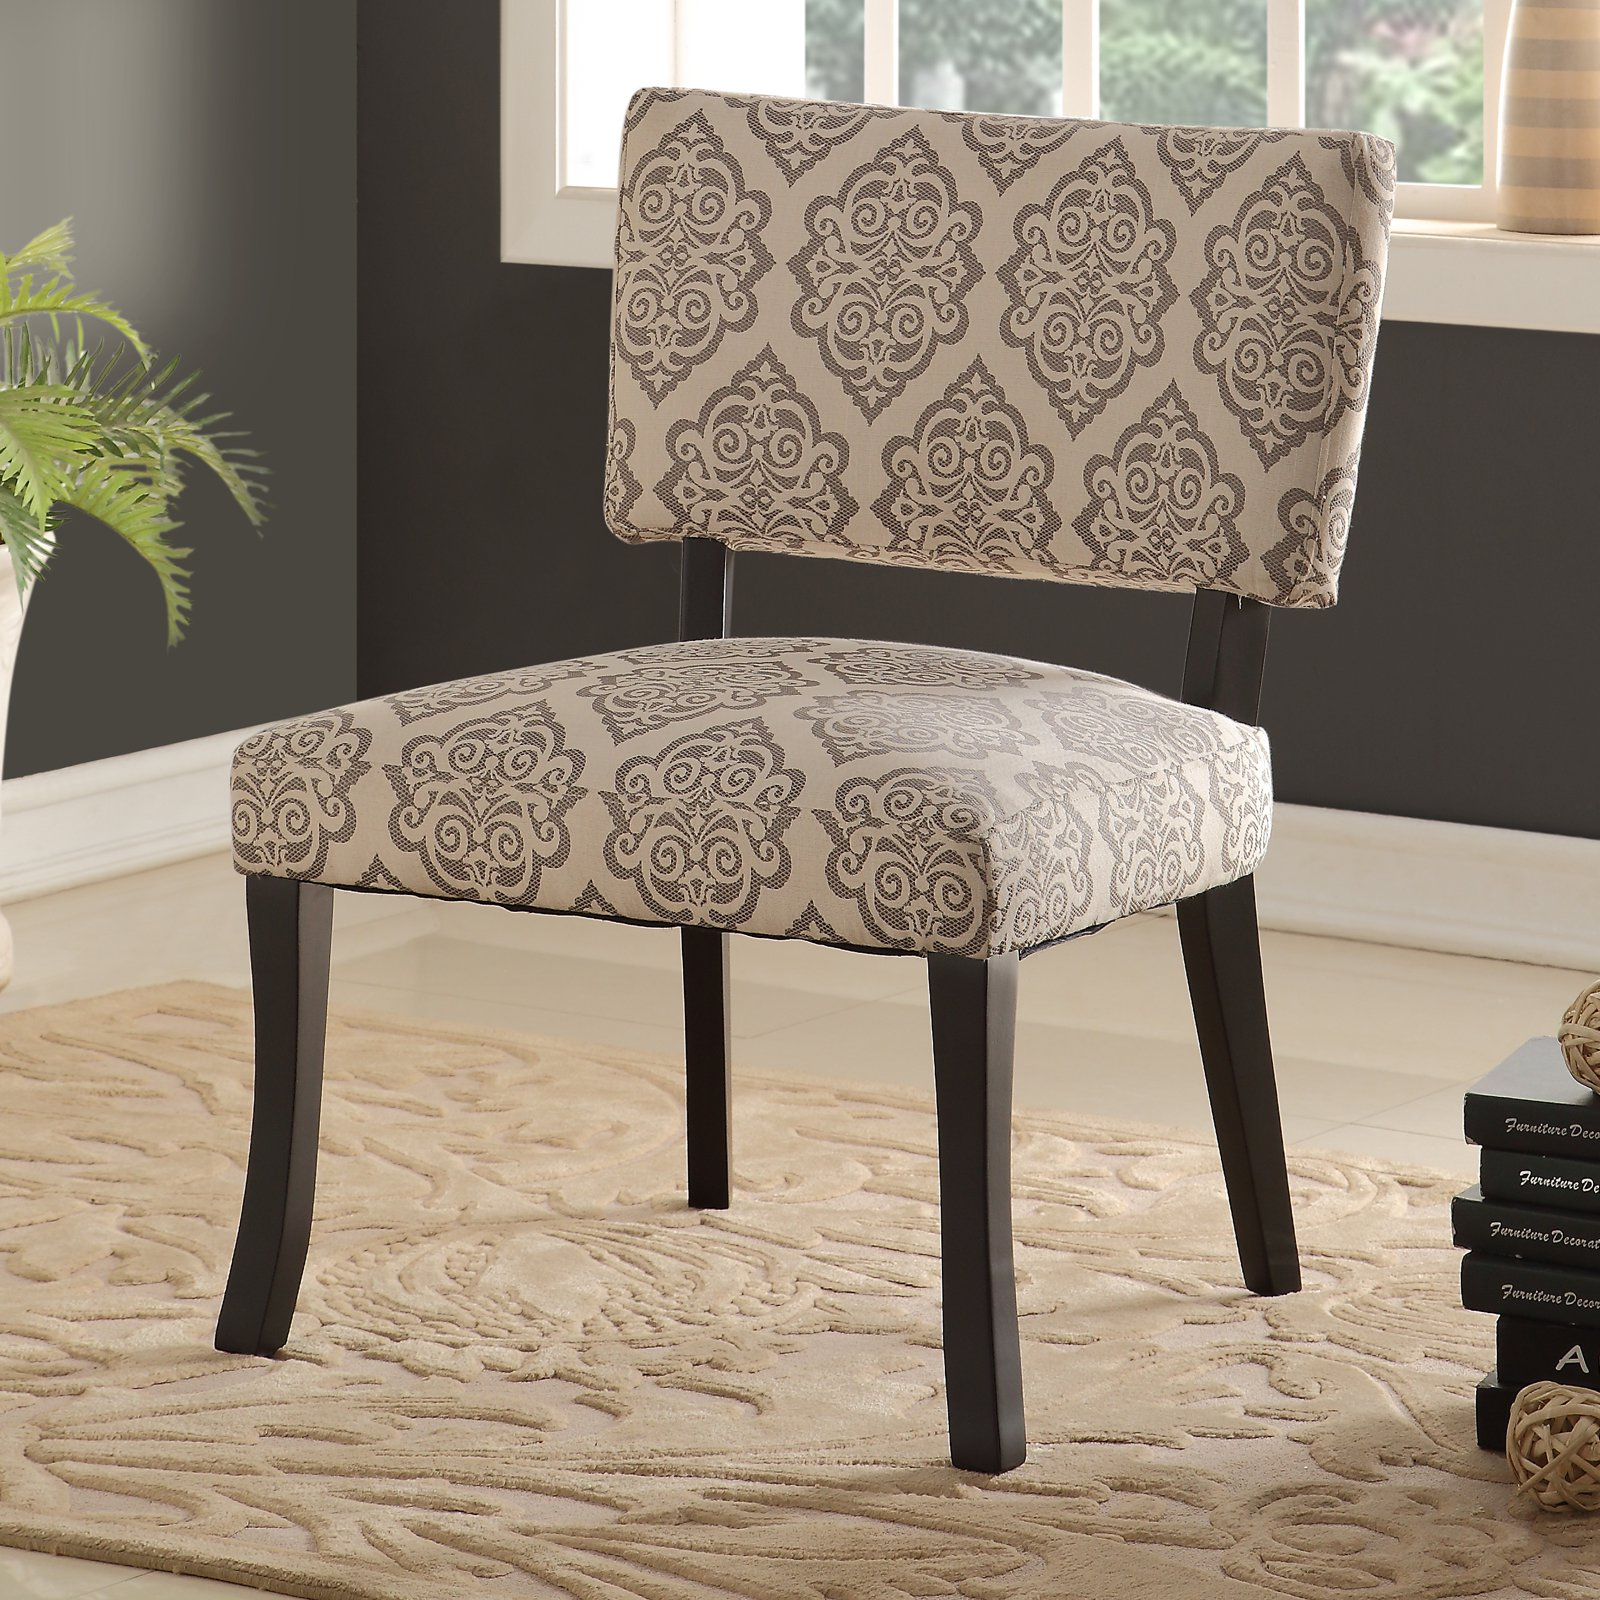 Bella Upholstered Accent Chair, Black Legs